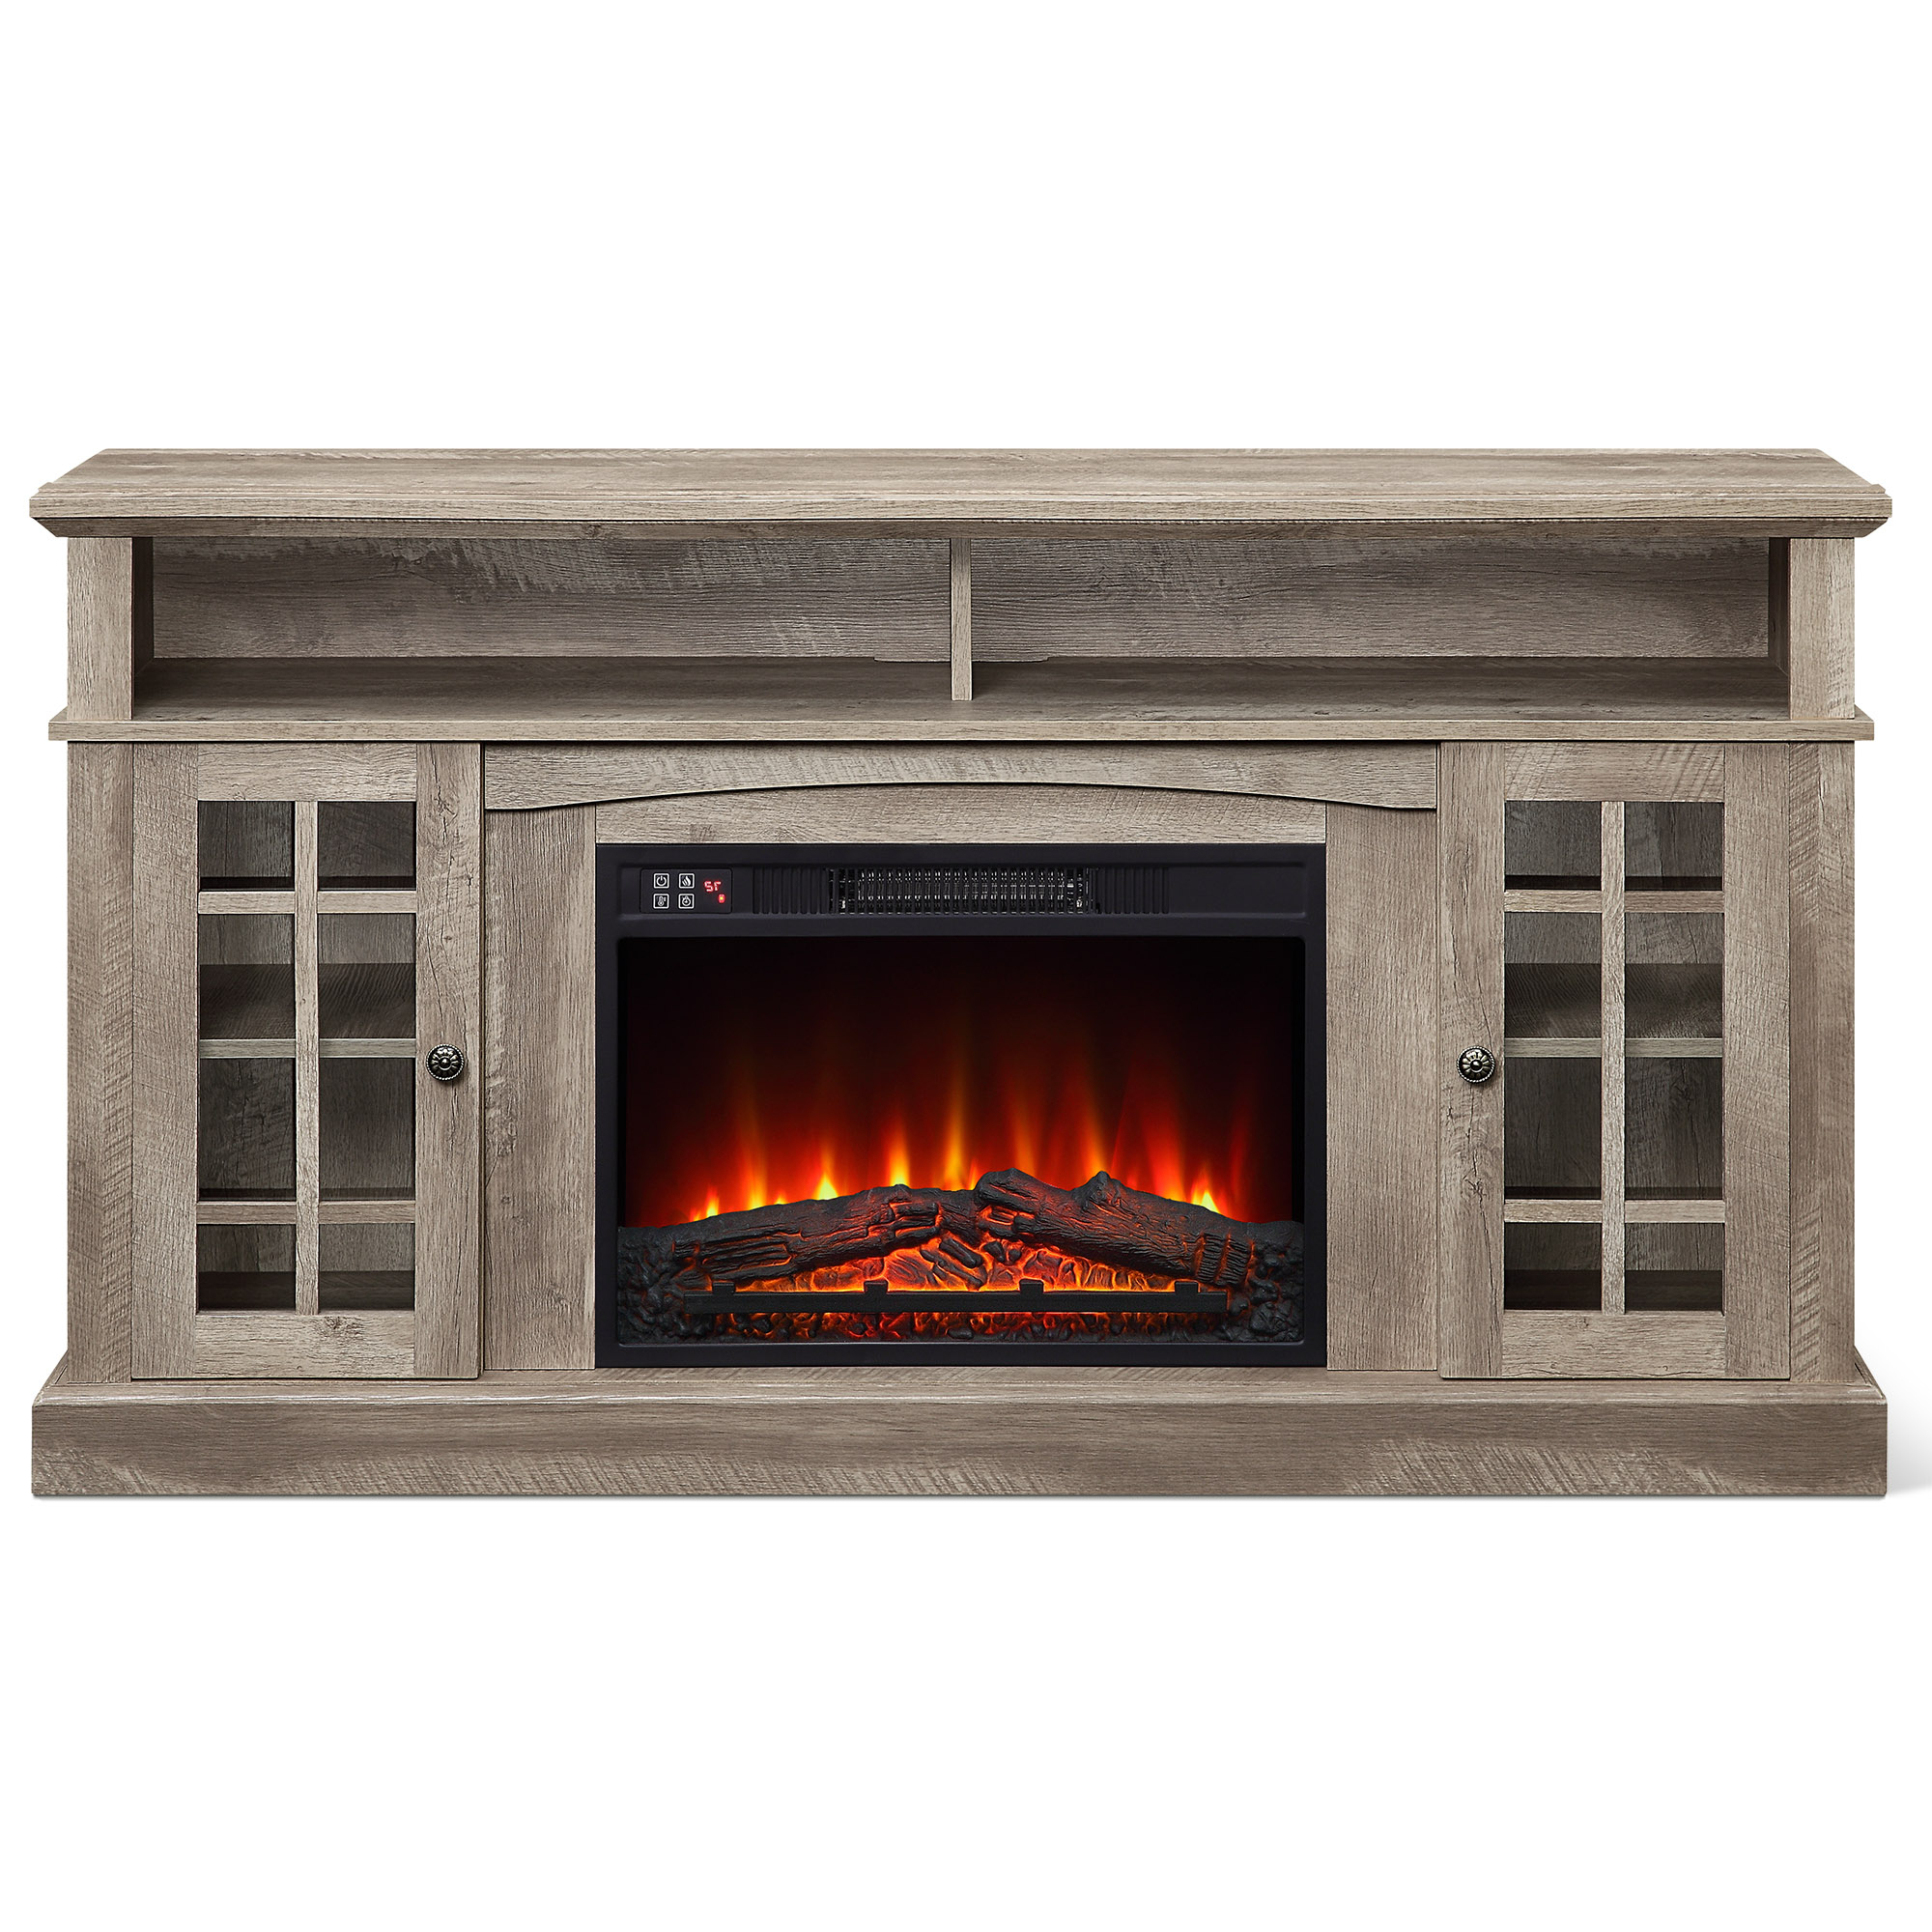 """Famous Valenti Tv Stands For Tvs Up To 65"""" With Regard To Belleze Fireplace Tv Stand With Remote Control Console (View 19 of 25)"""